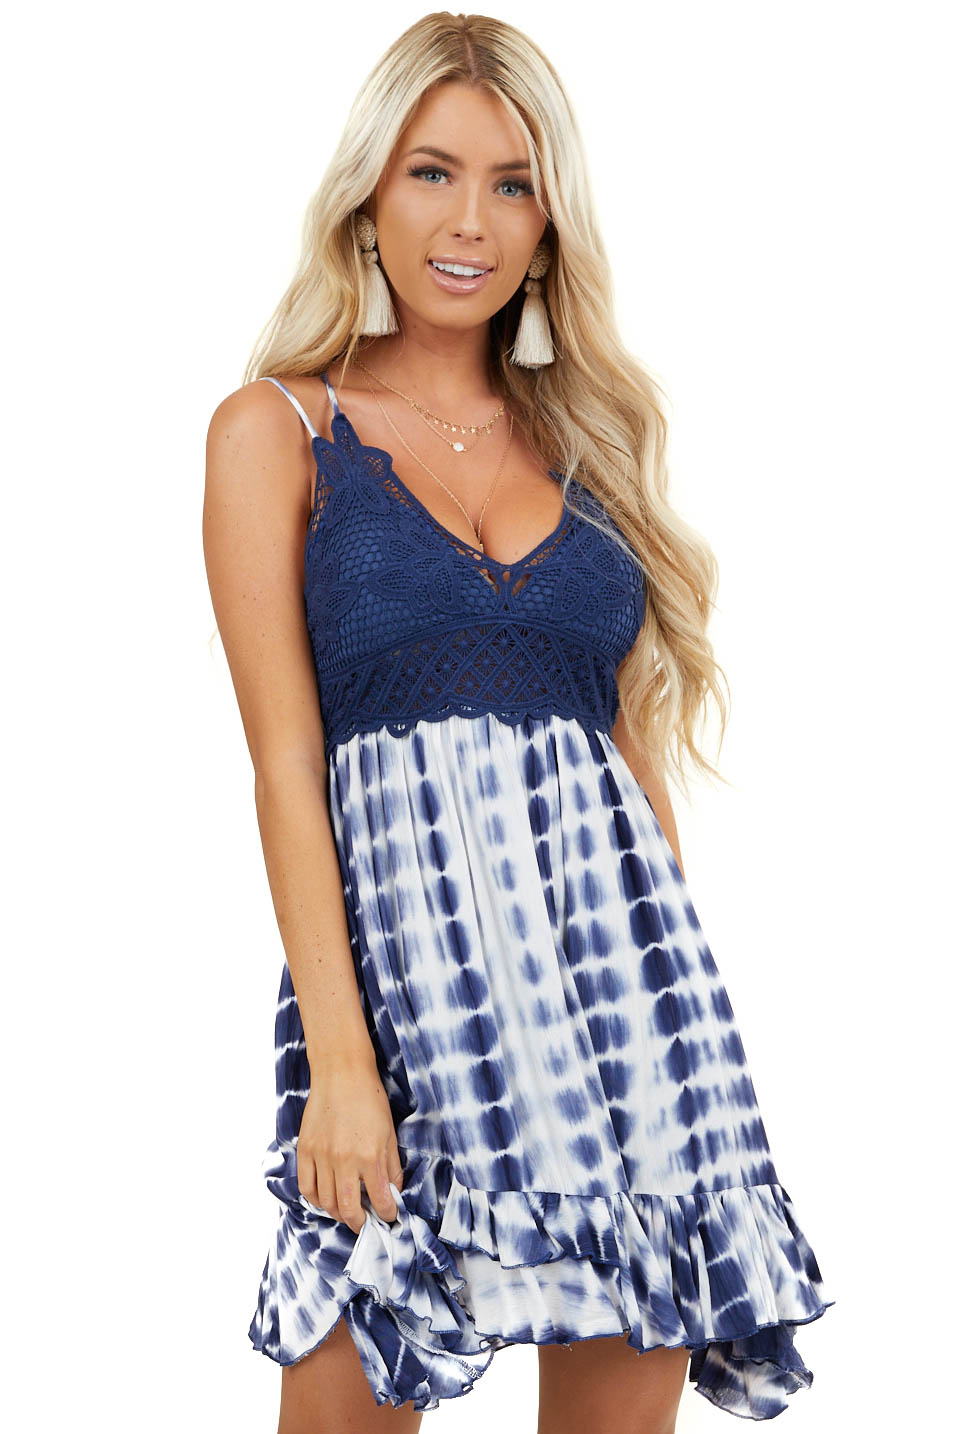 Navy and White Tie Dye Dress with Crochet Lace Bust